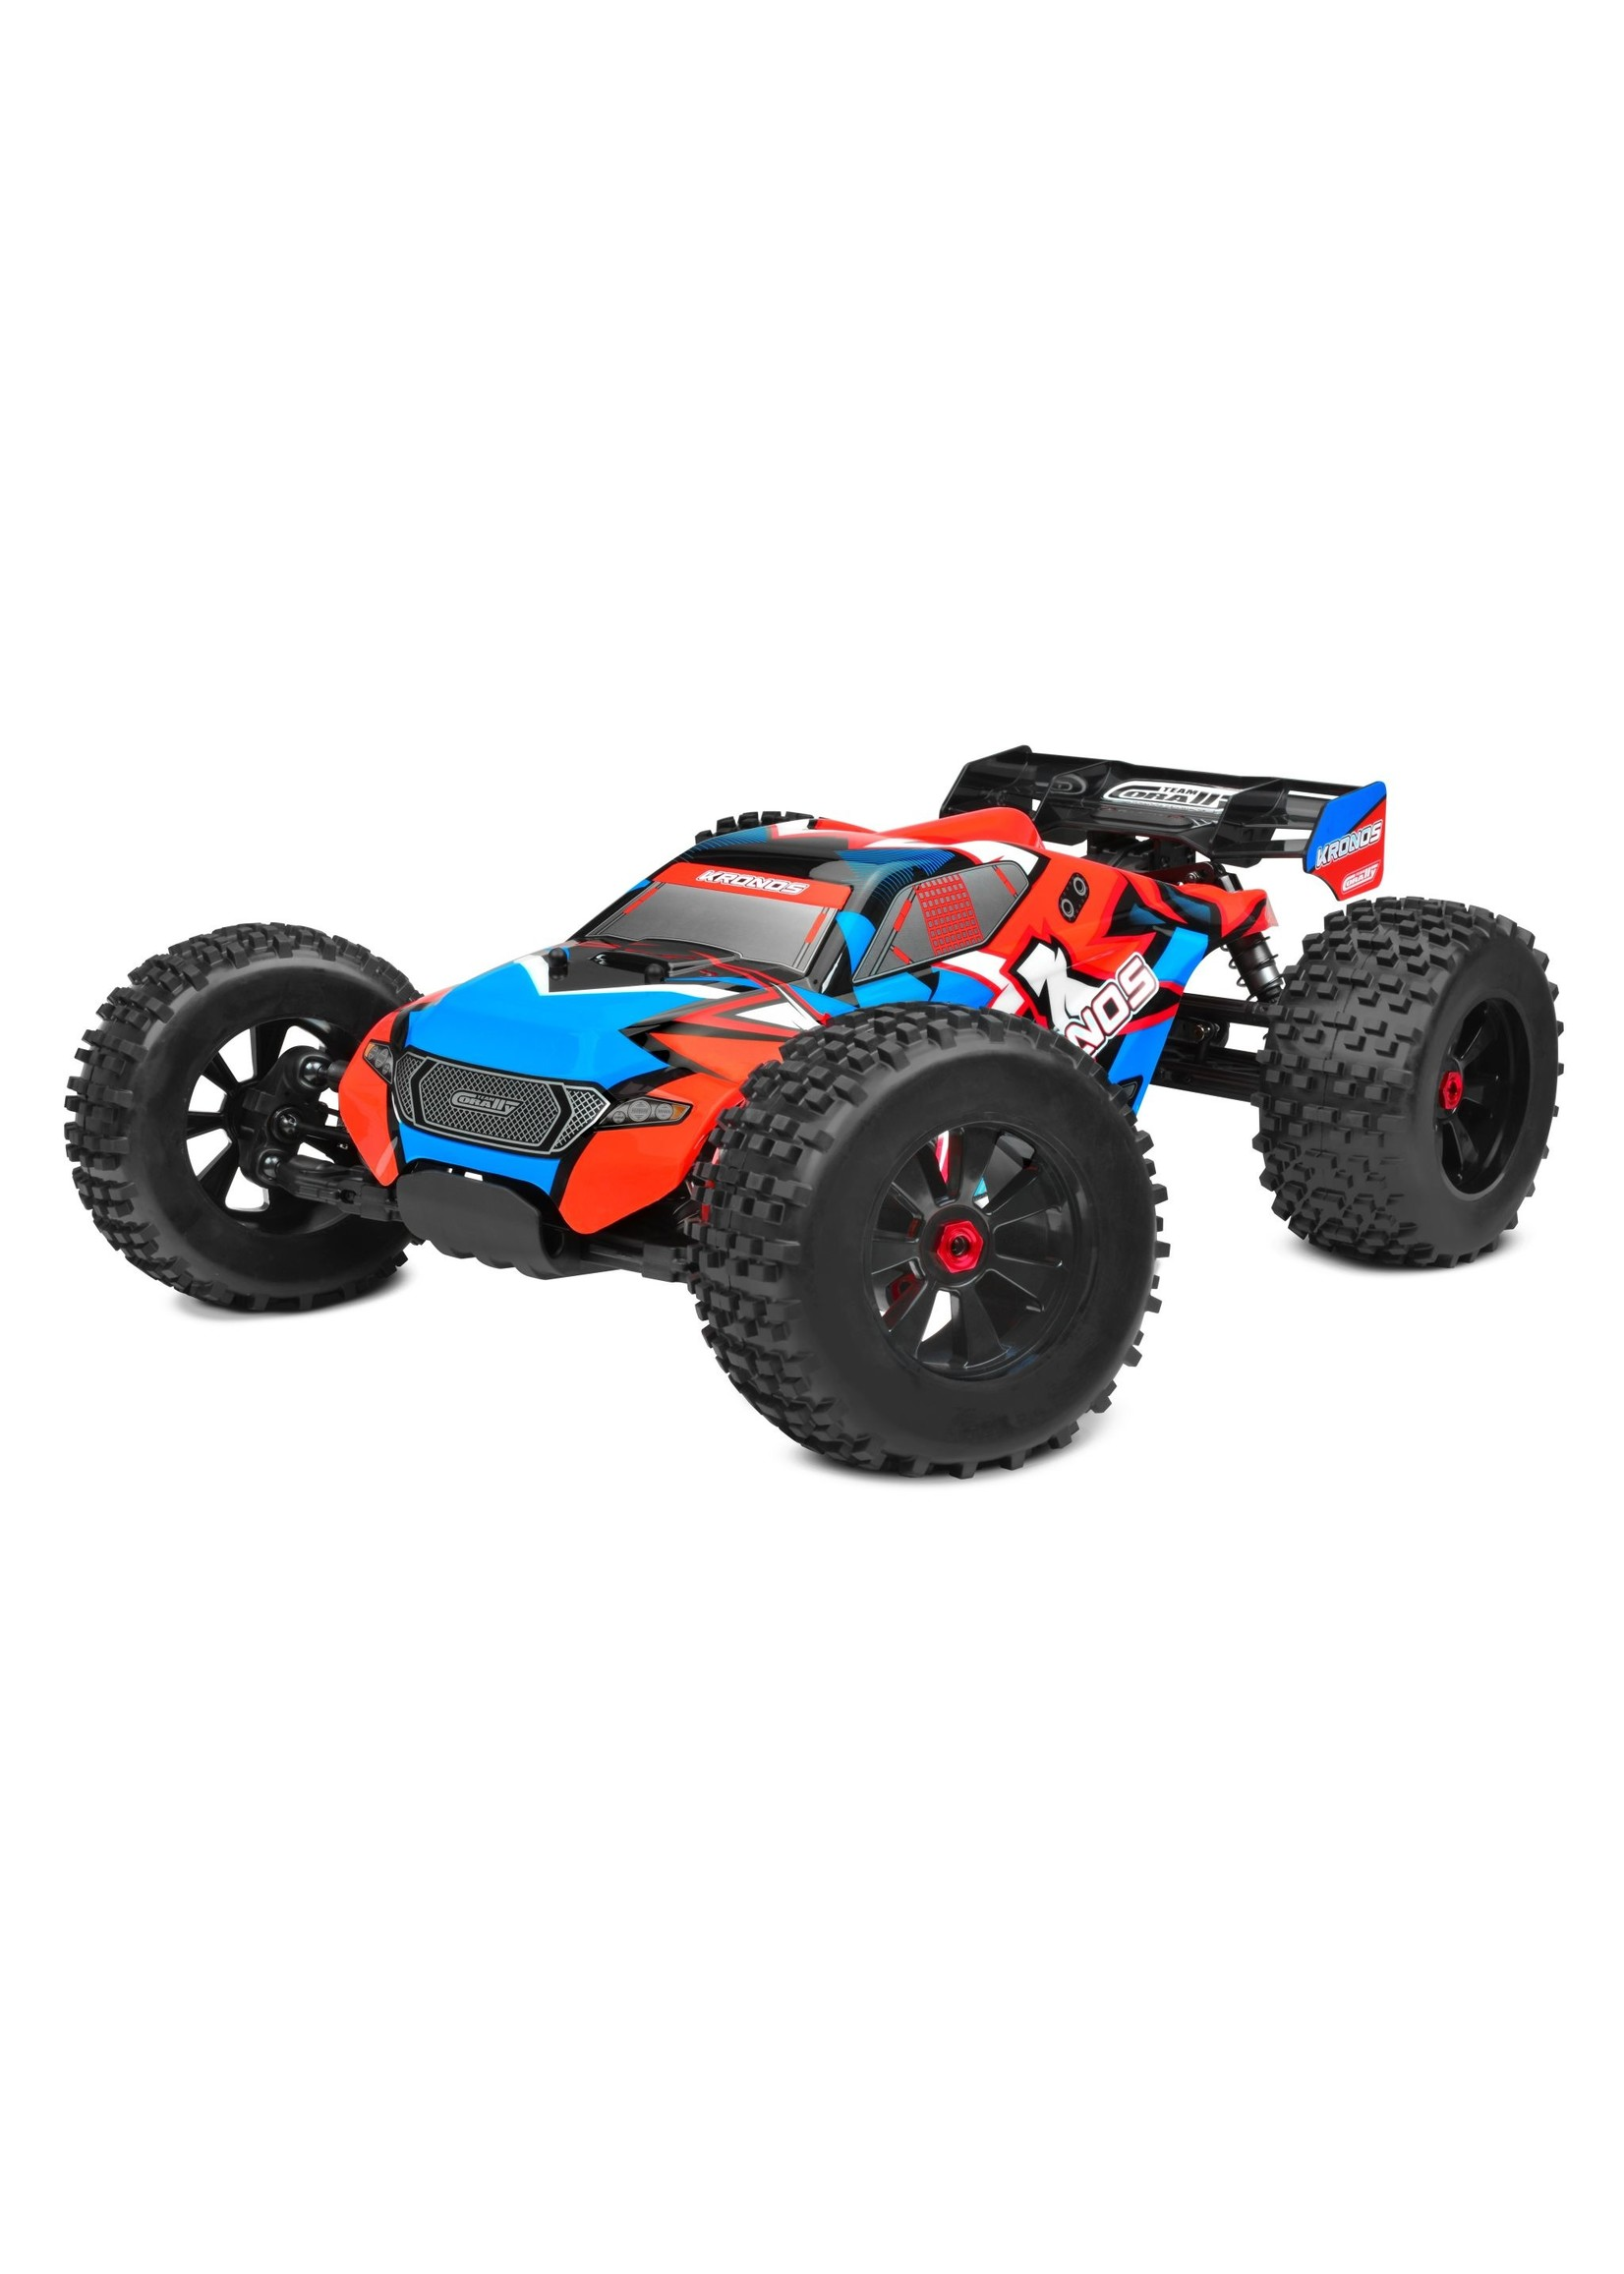 Team Corally COR00172 Team Corally 1/8 Kronos XP 4WD Monster Truck 6S Brushless RTR (No Battery or Charger)